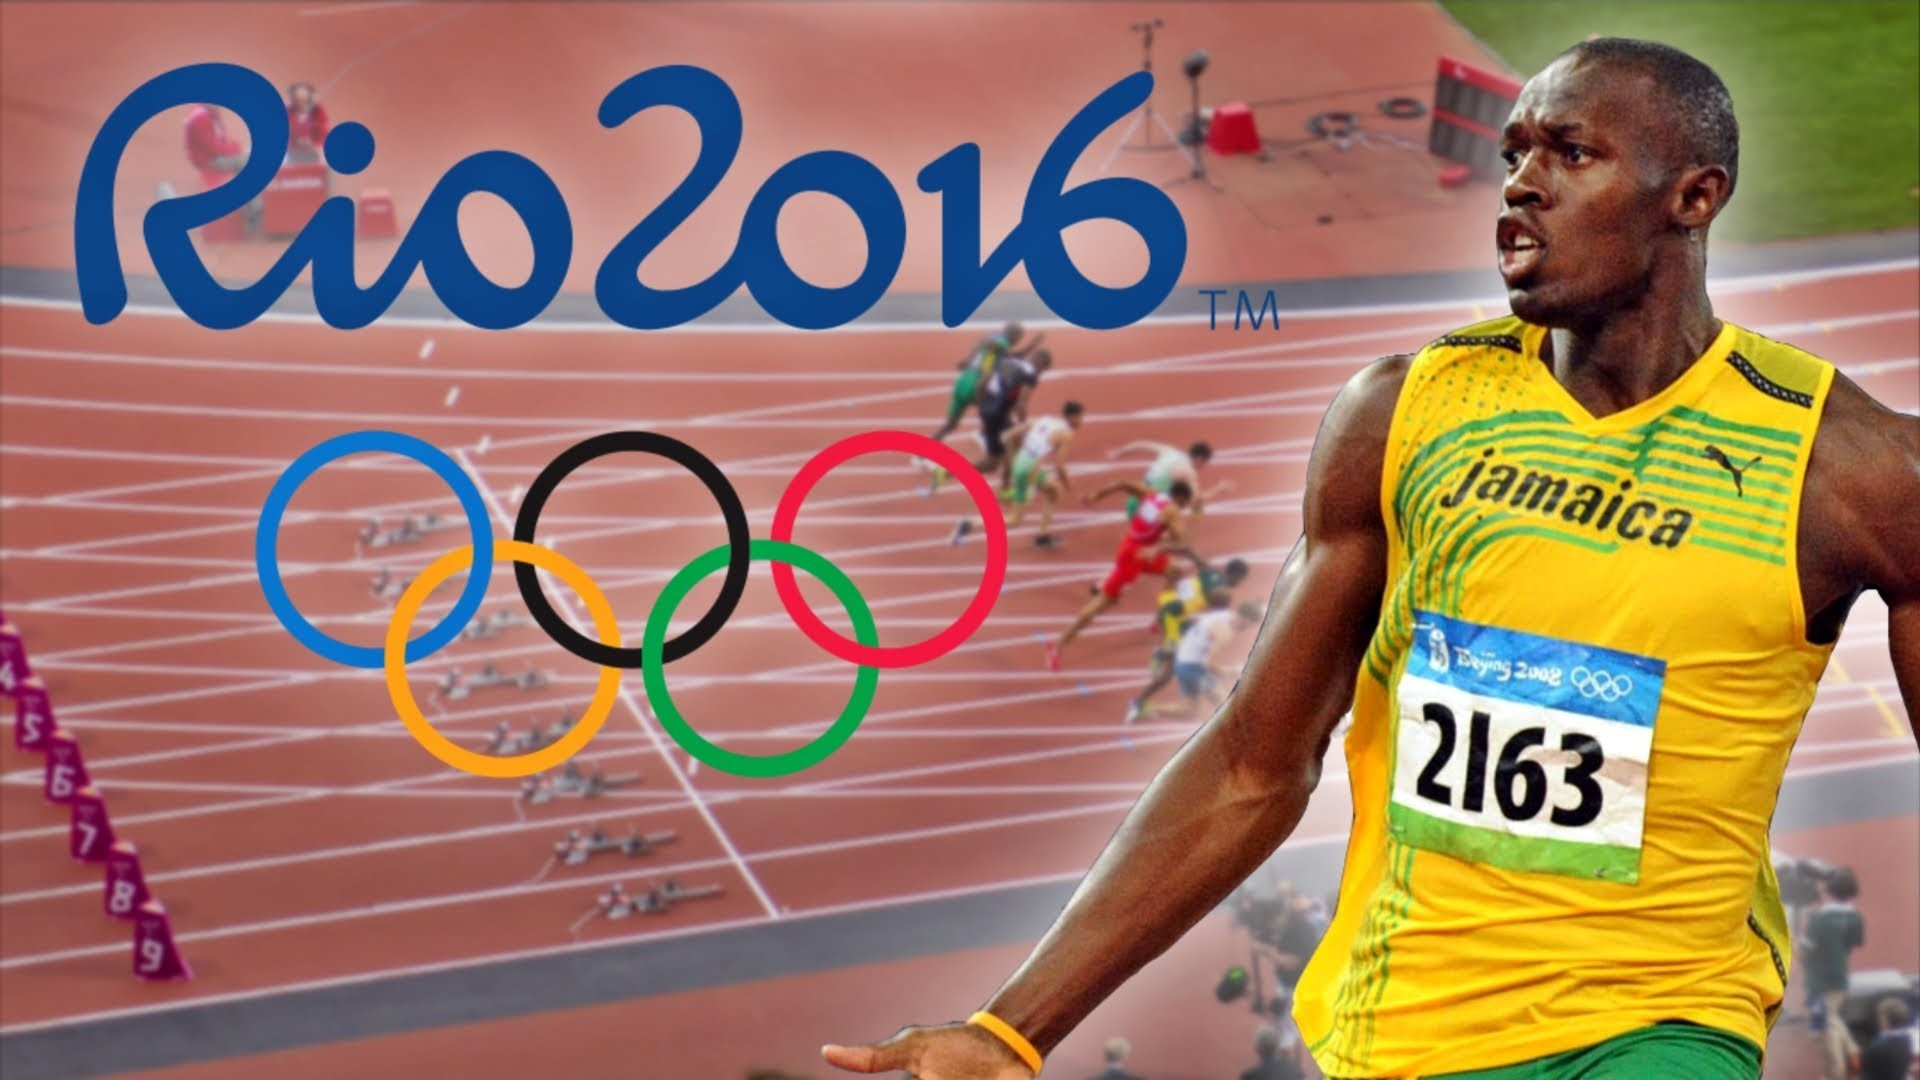 1920x1080 Usain Bolt wins gold medal in his final Olympic race